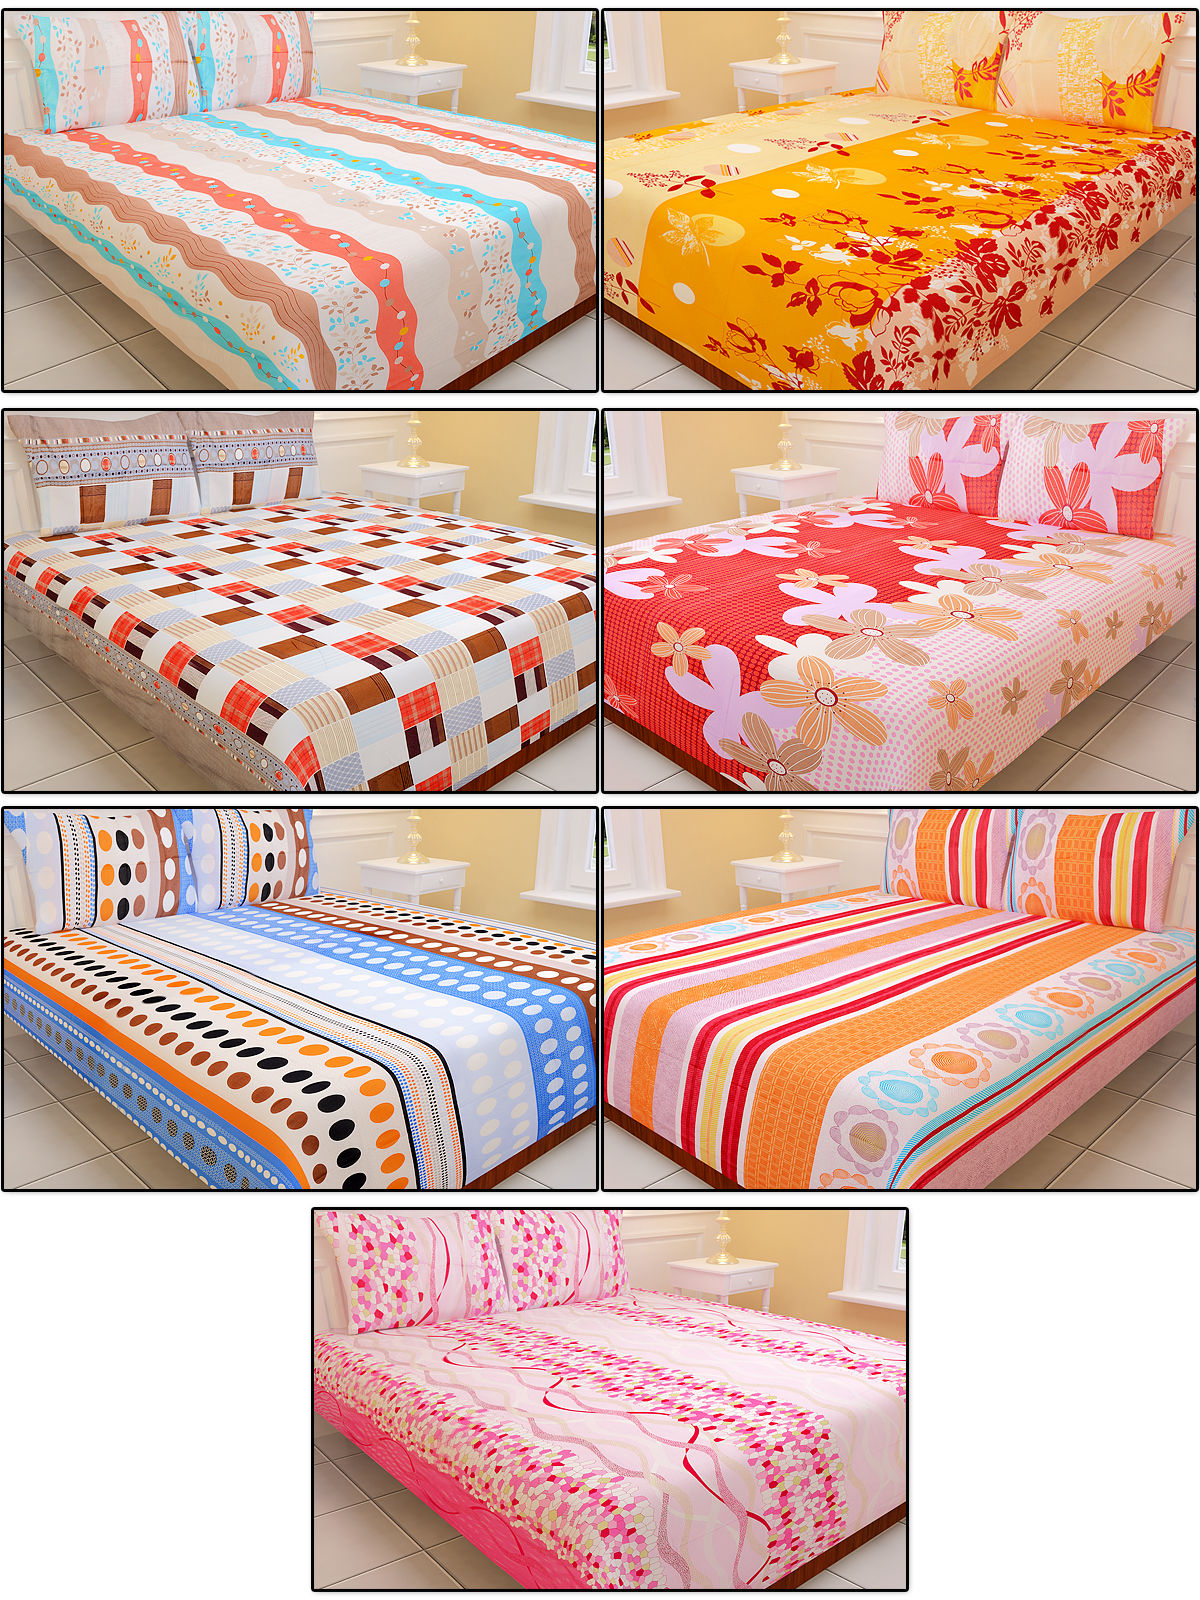 Bed sheet patterns men - Masculine Bedding Over 200 Mens Comforters Amp Bedspreads Pattern Male Bed